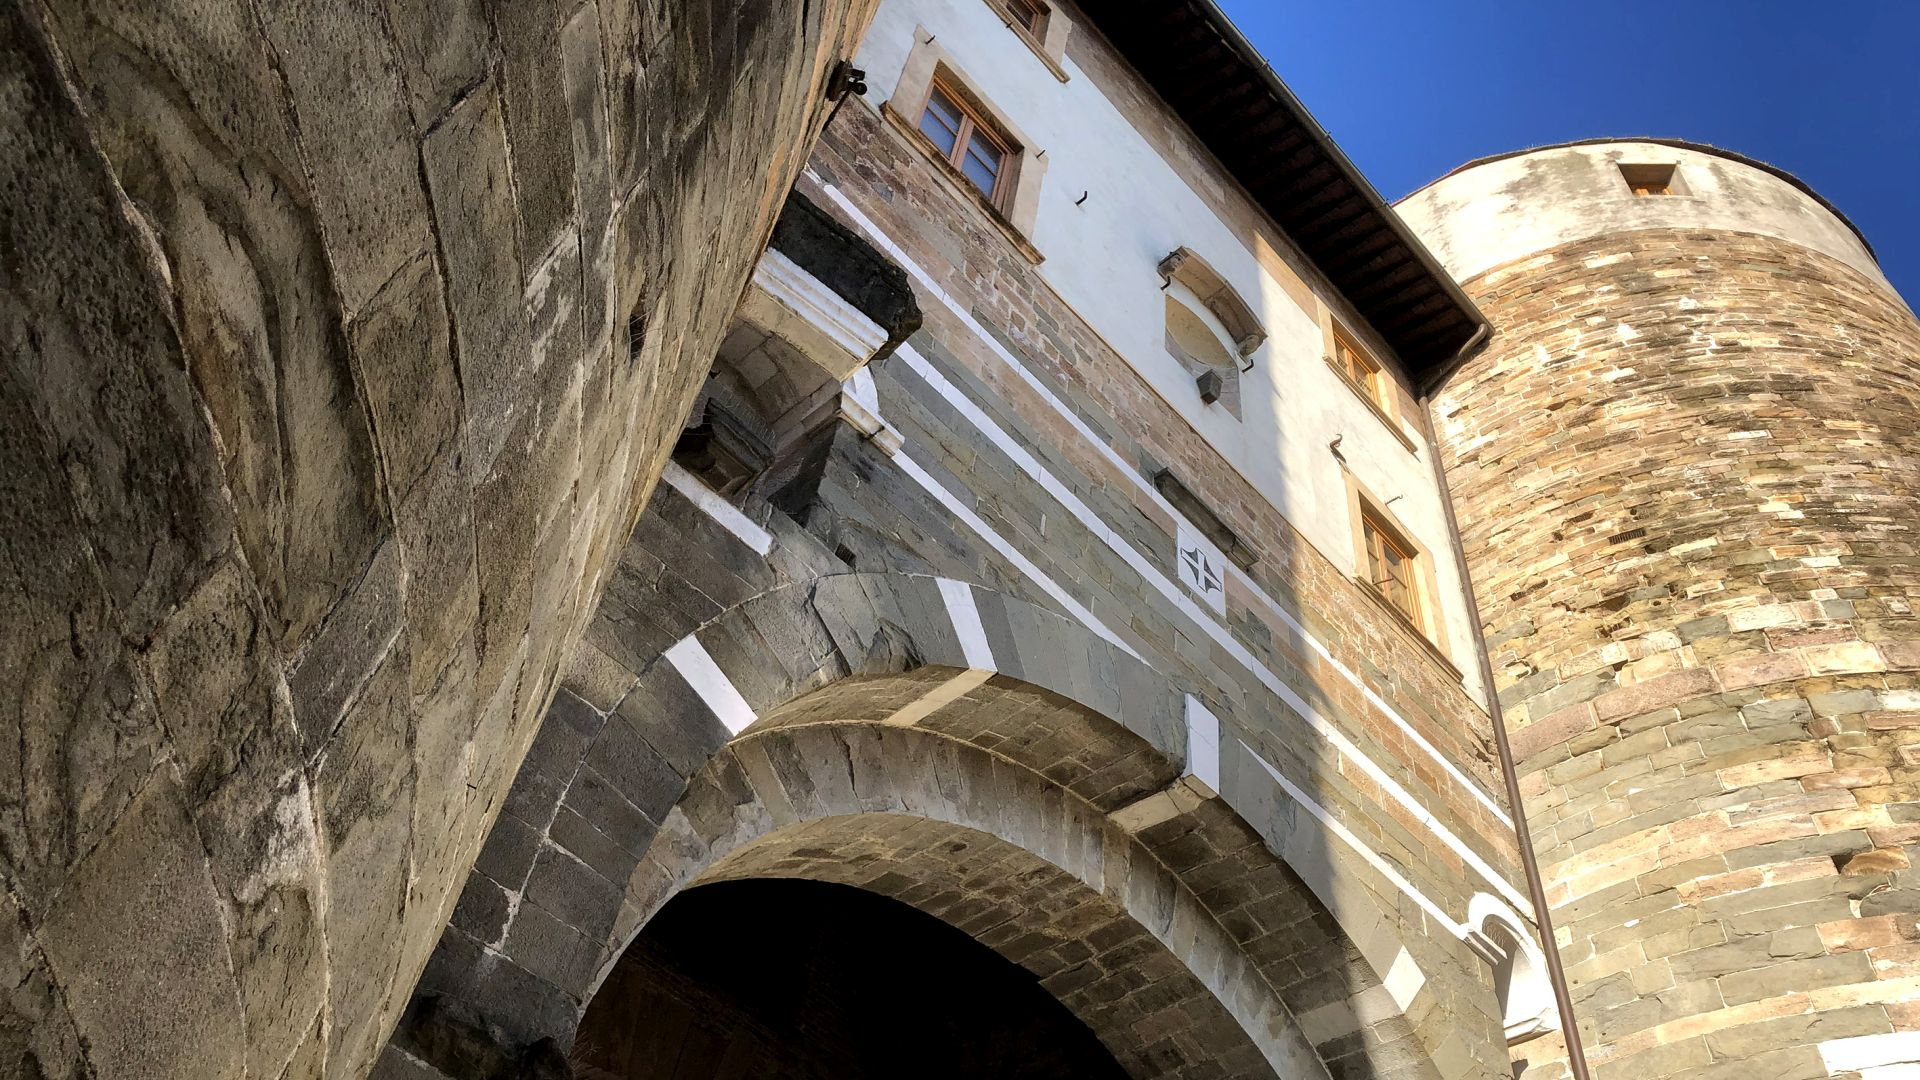 Porta San Gervasio of the medieval walls of Lucca